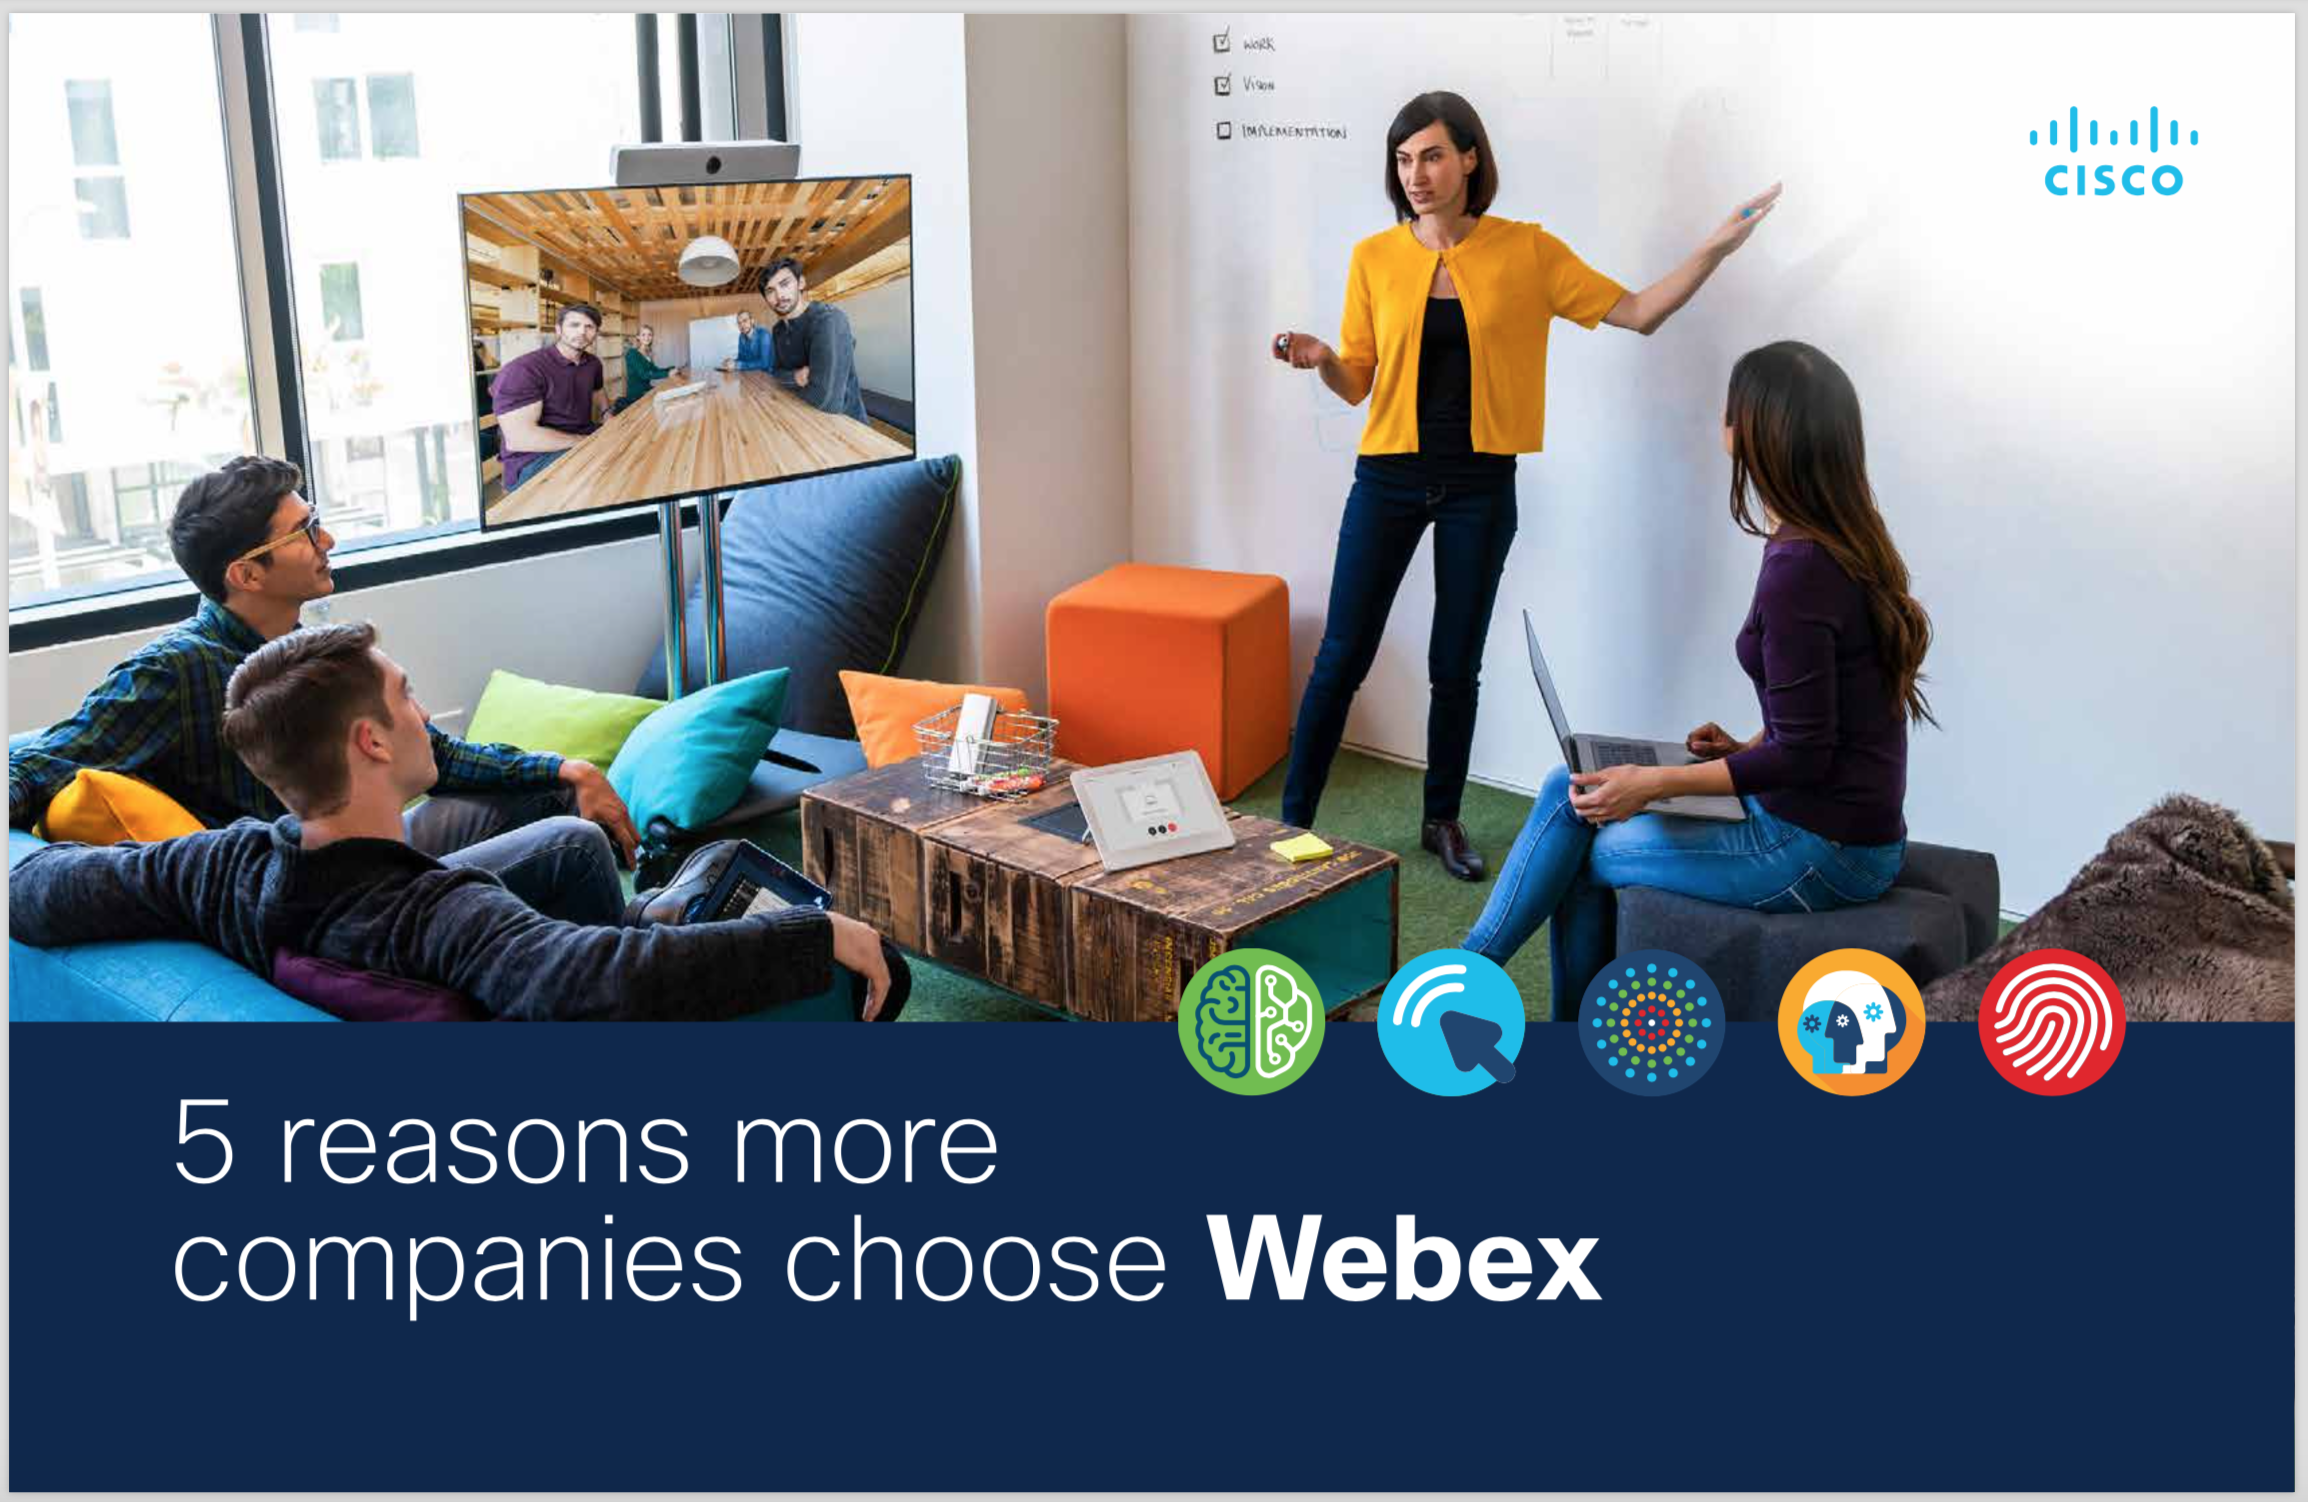 Cisco Webex 5 Reasons 1